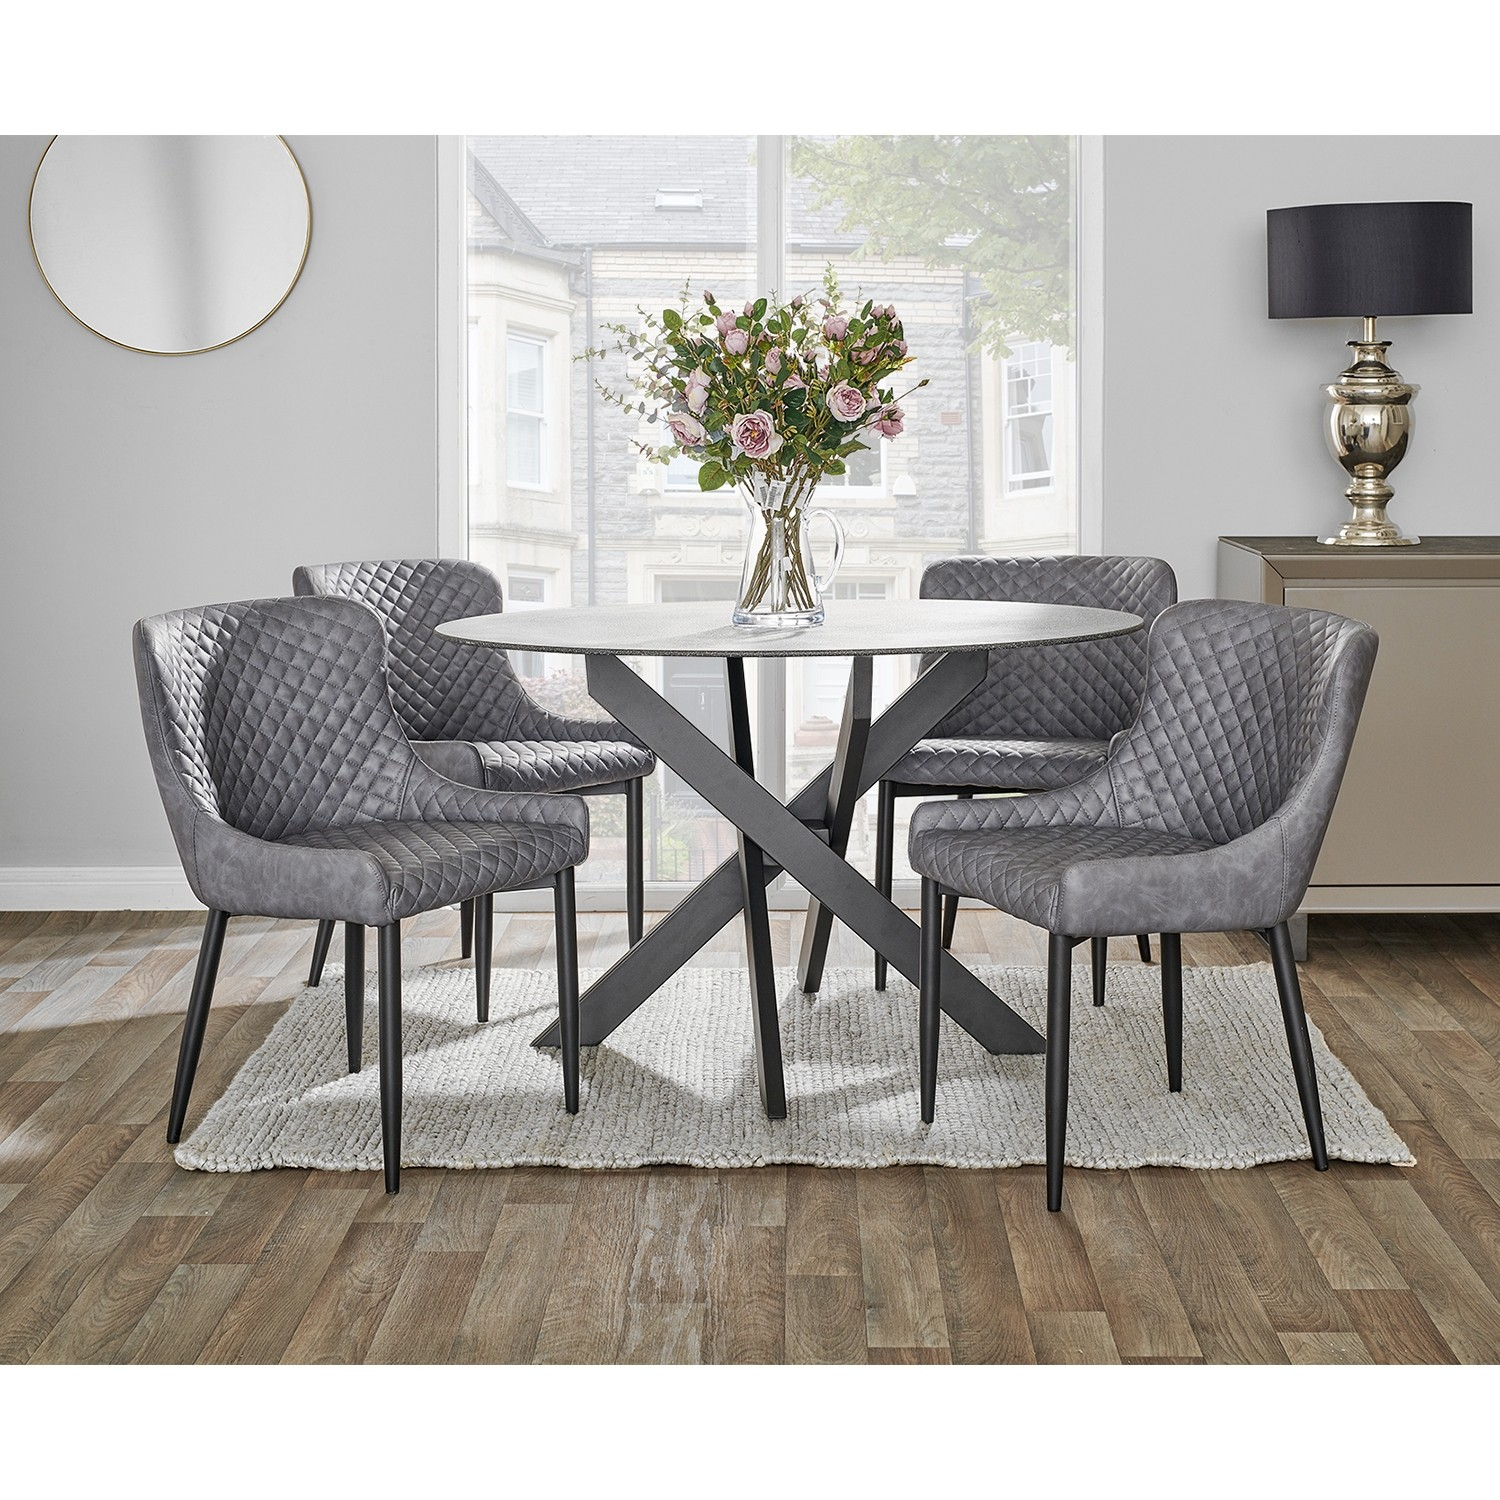 Casa Cairns Table & 9 Chairs Dining Set